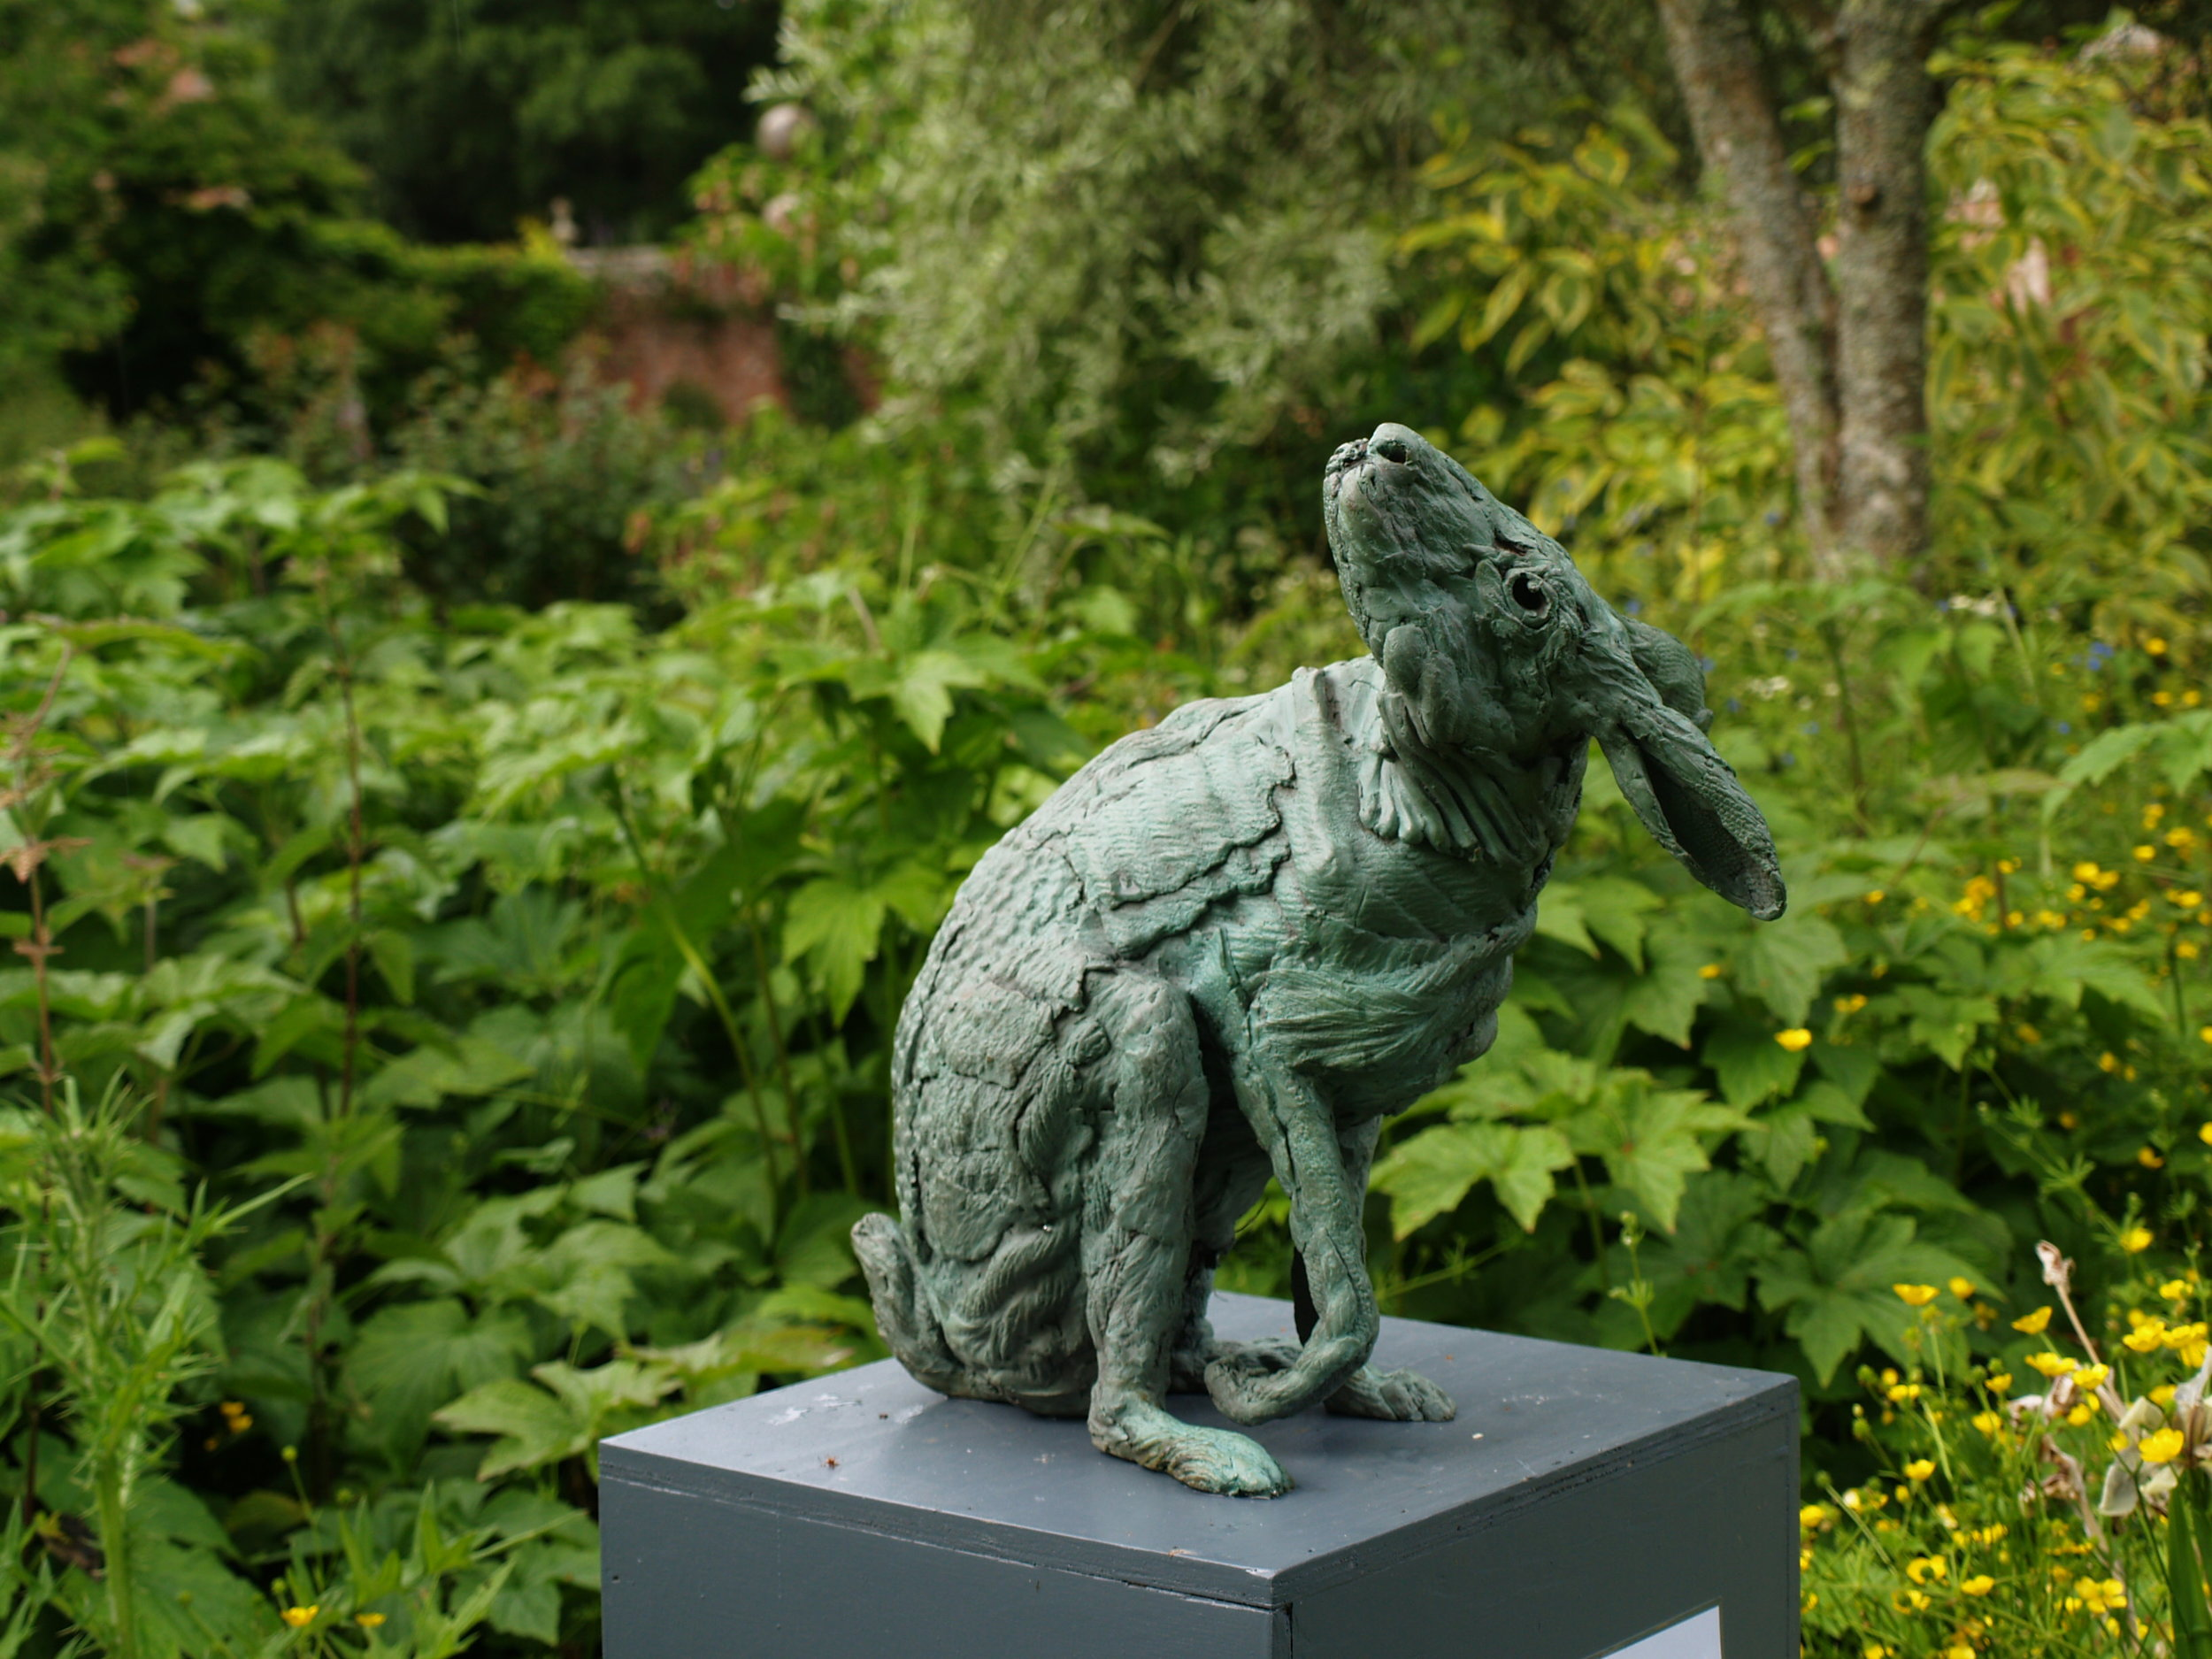 Hare after Ts'ui Po,  Marjan Wouda, Bronze, edition 3/9  2016, Size: 14 x 14 x 8, Price on Request (C6309MW)